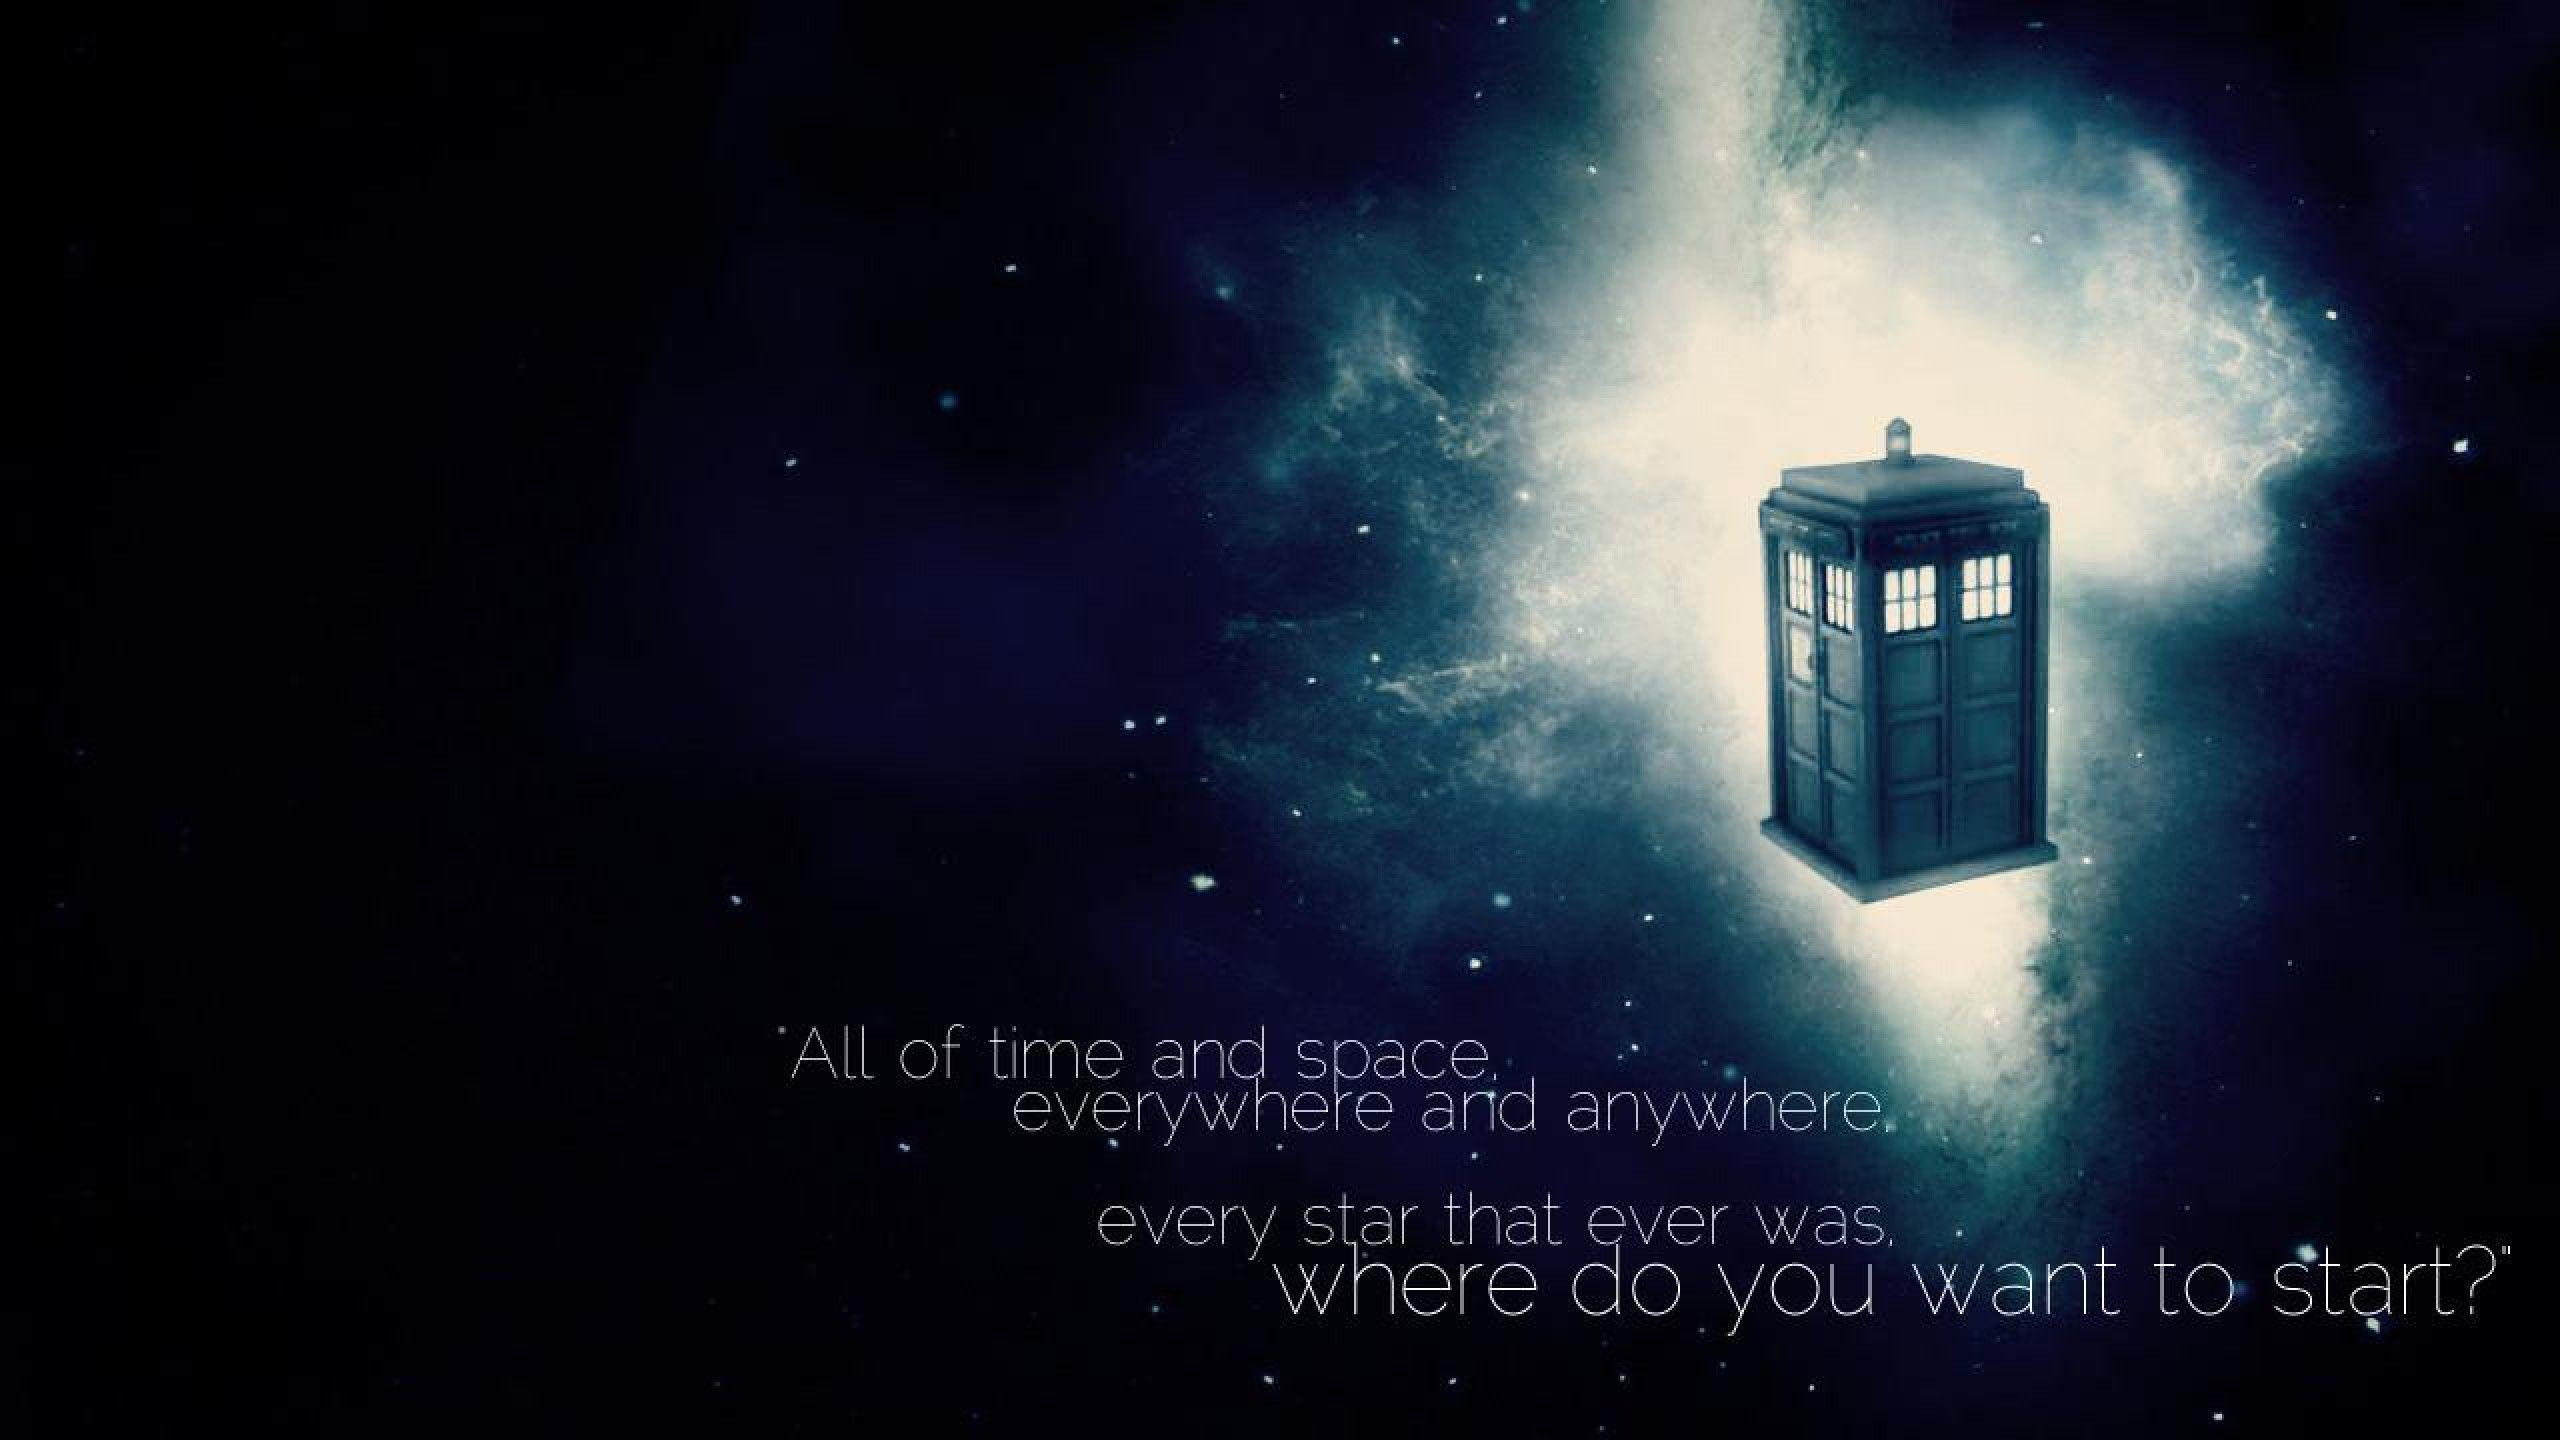 Doctor Who Wallpapers 2560x1440